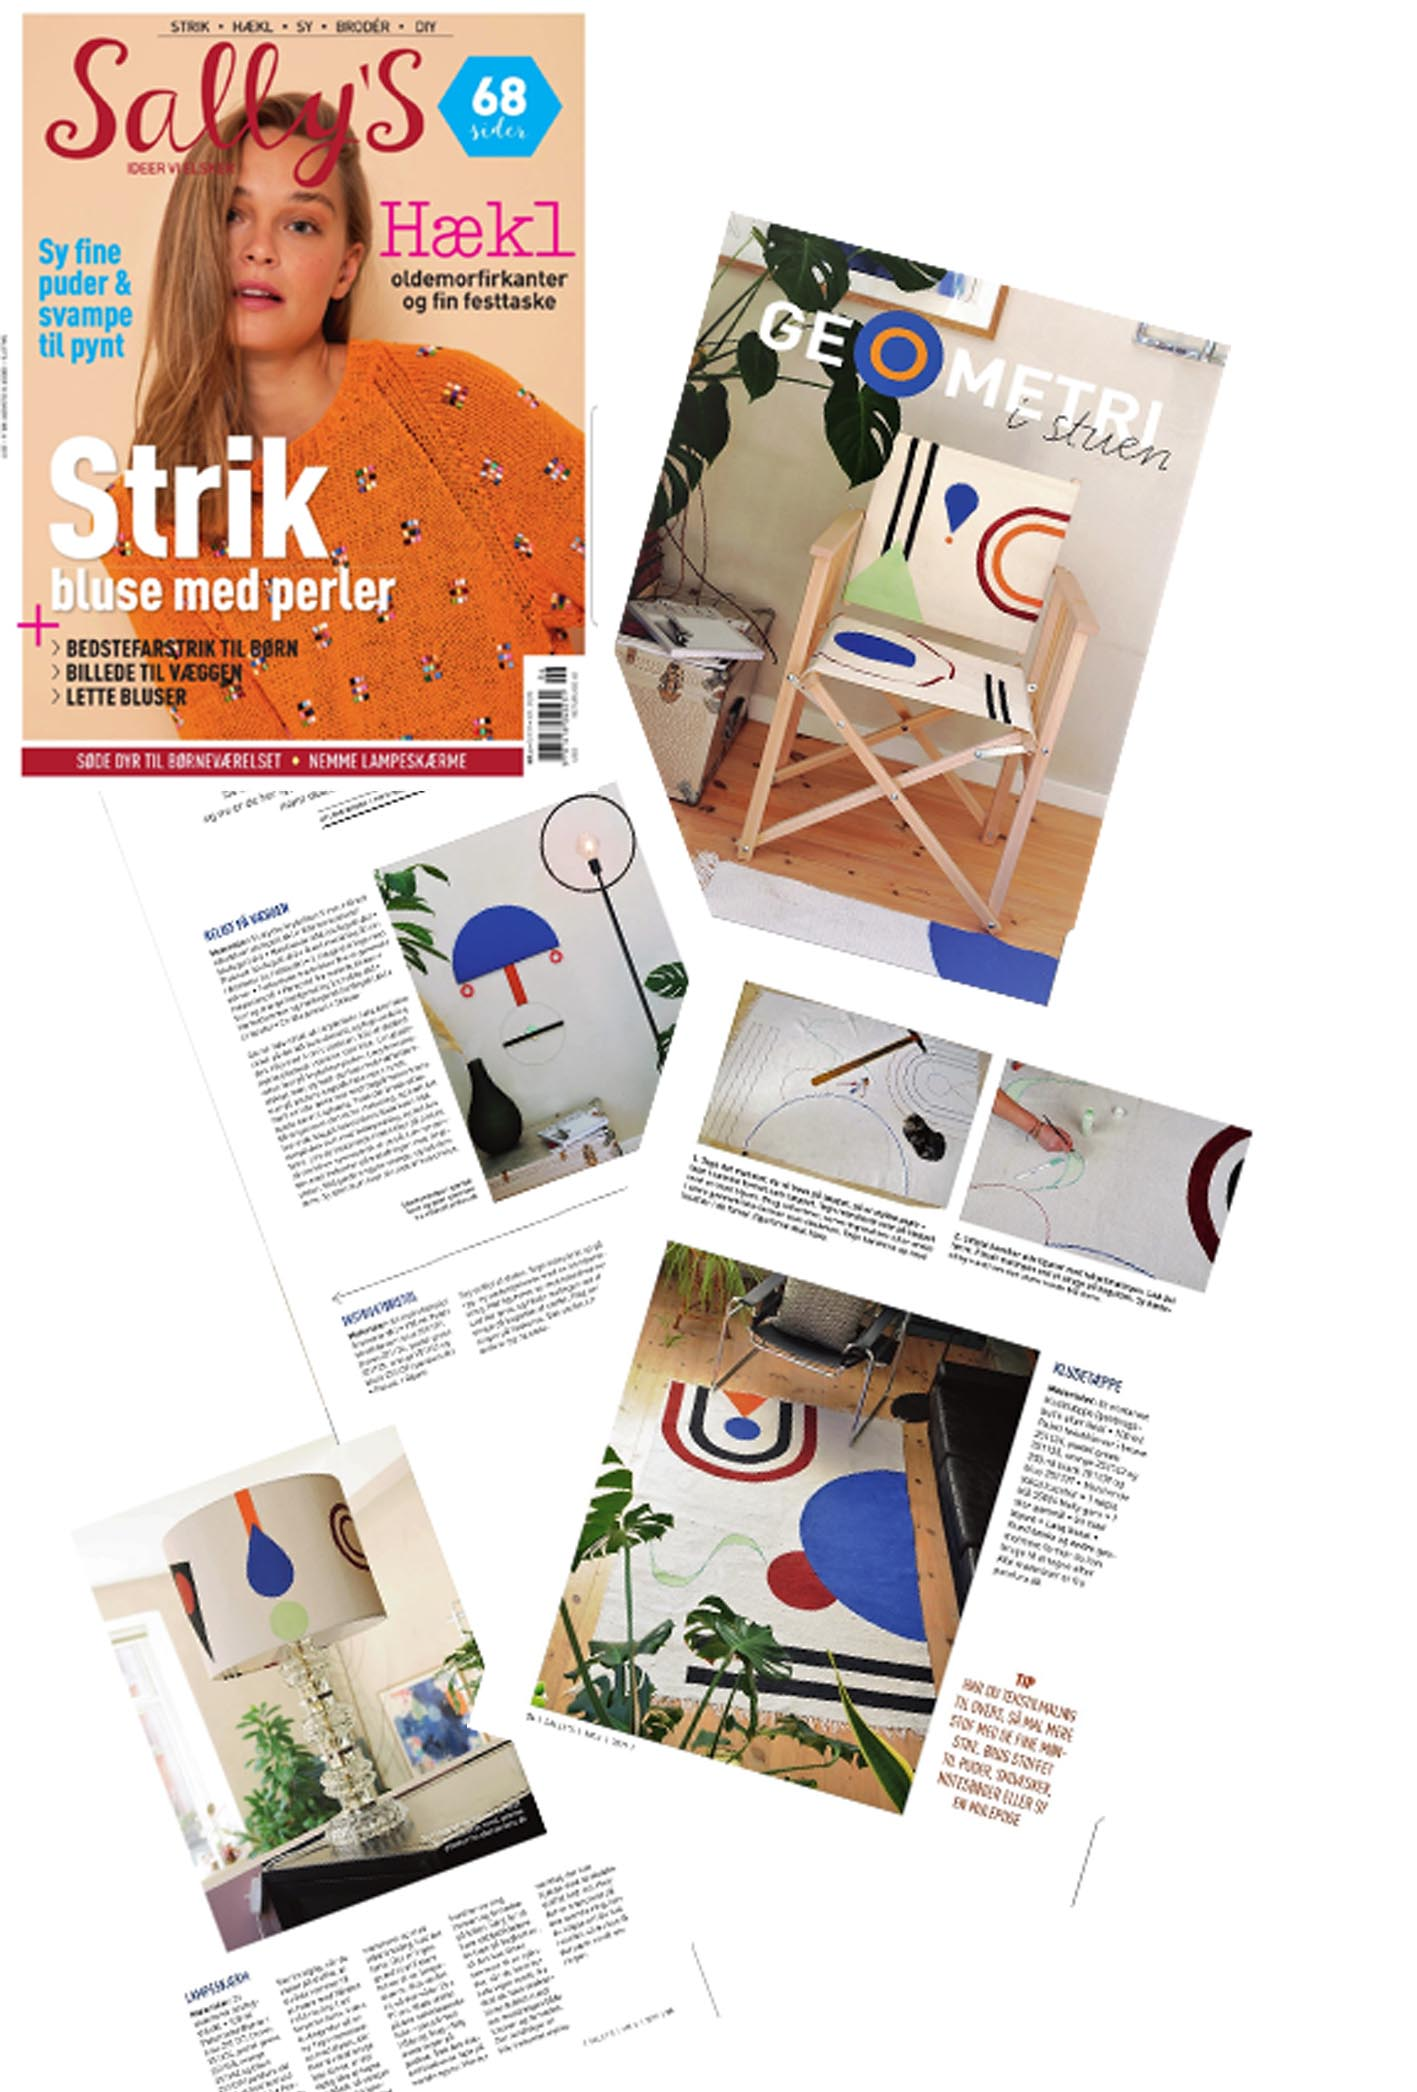 From the creative magazine Sally's that is available now in the shops.